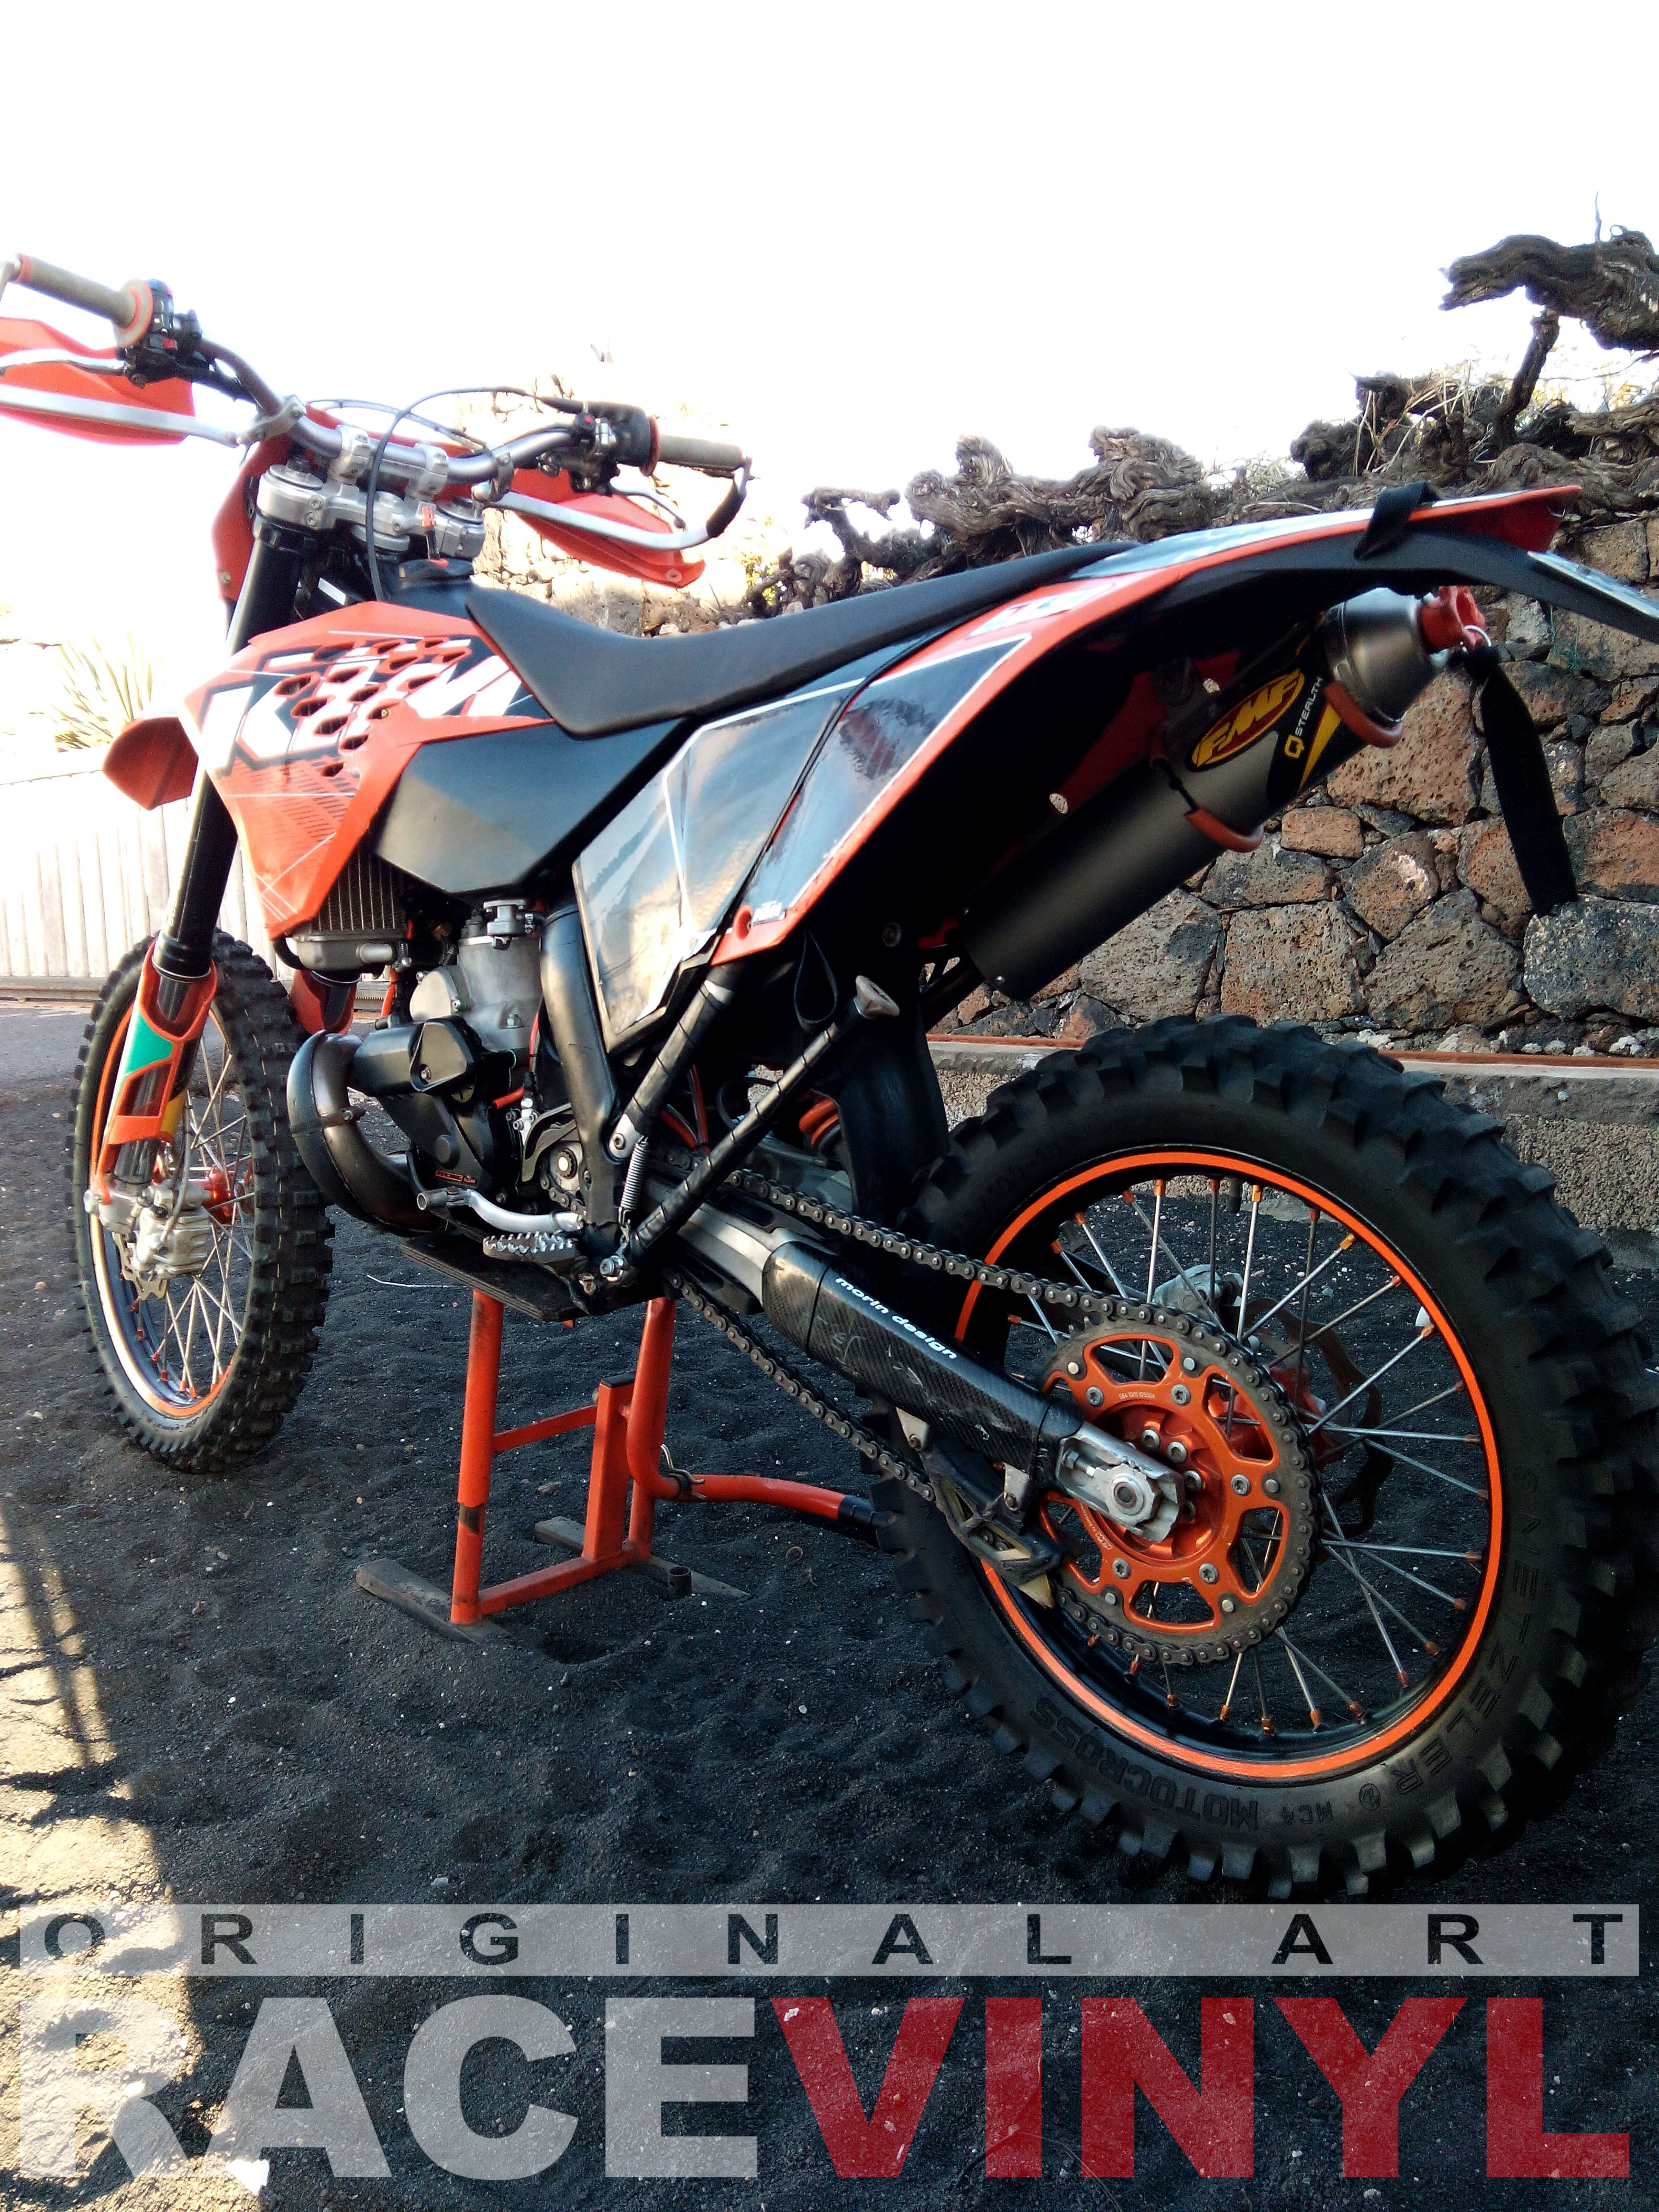 KTM 400 EXC Racing 2005 images #86404